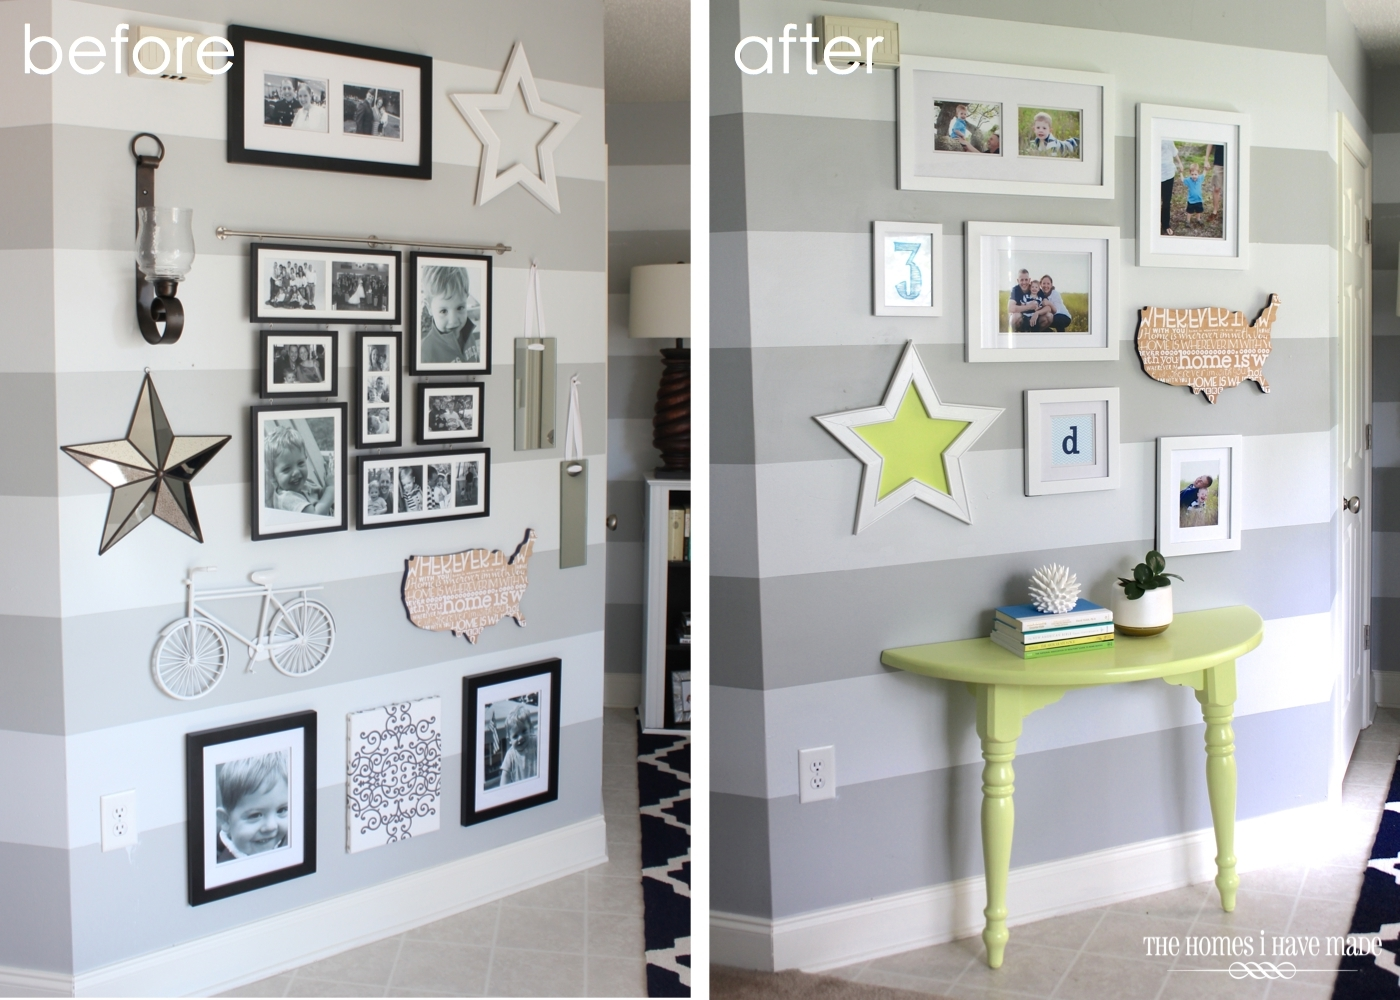 Pops of Color-Before After Entry-ForRent.com